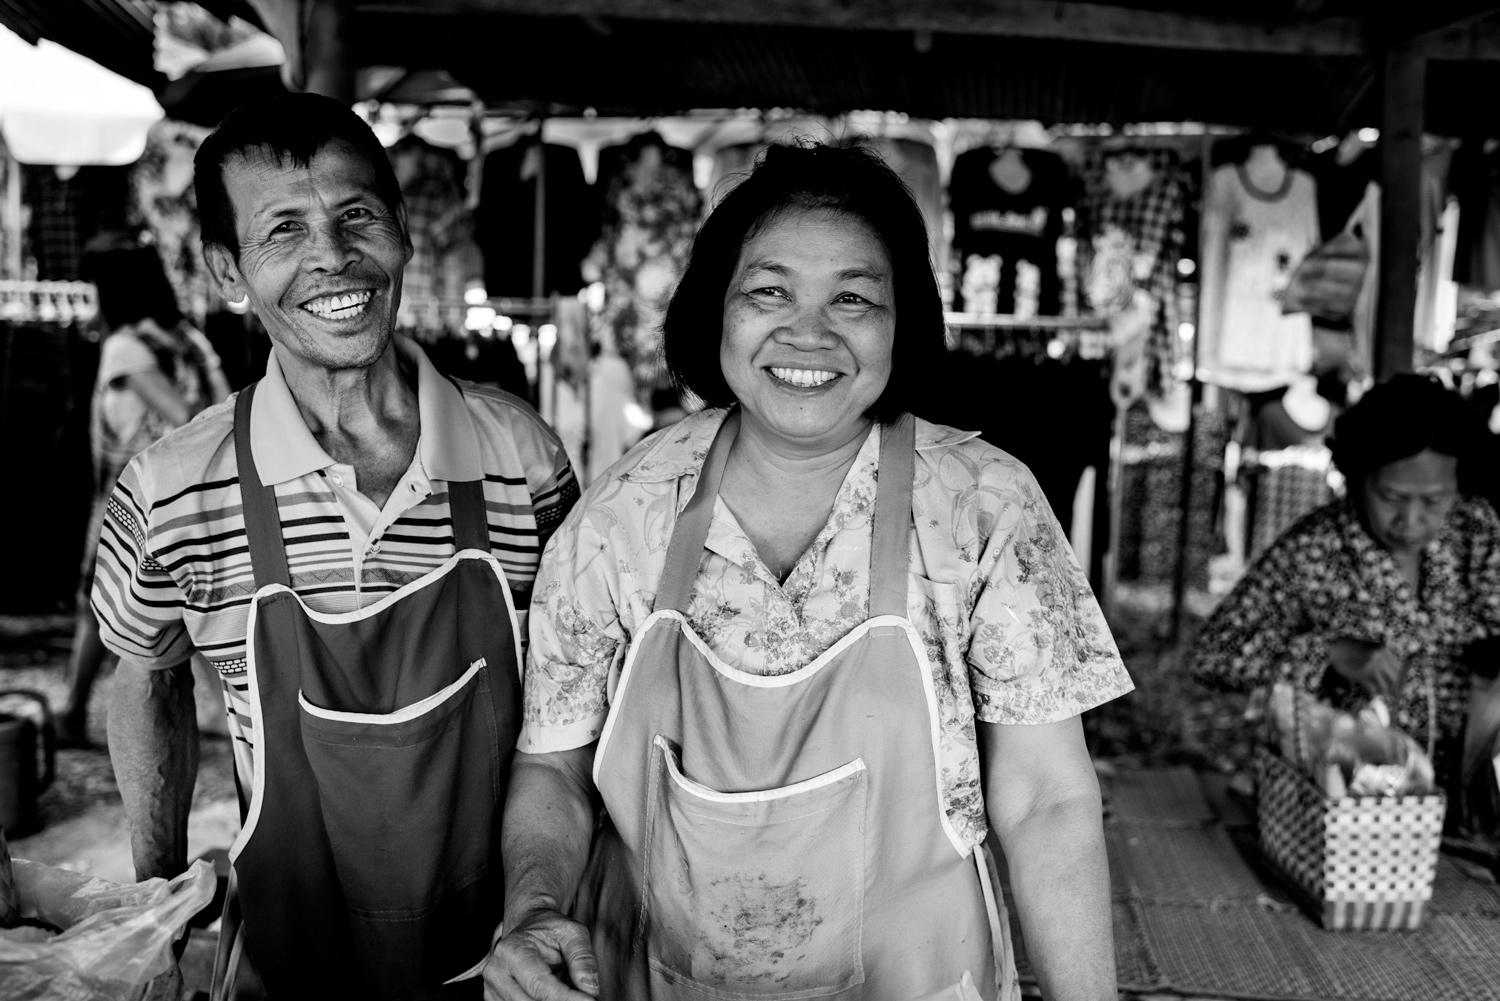 Vendors How Using the Zone System Can Improve Your Photography